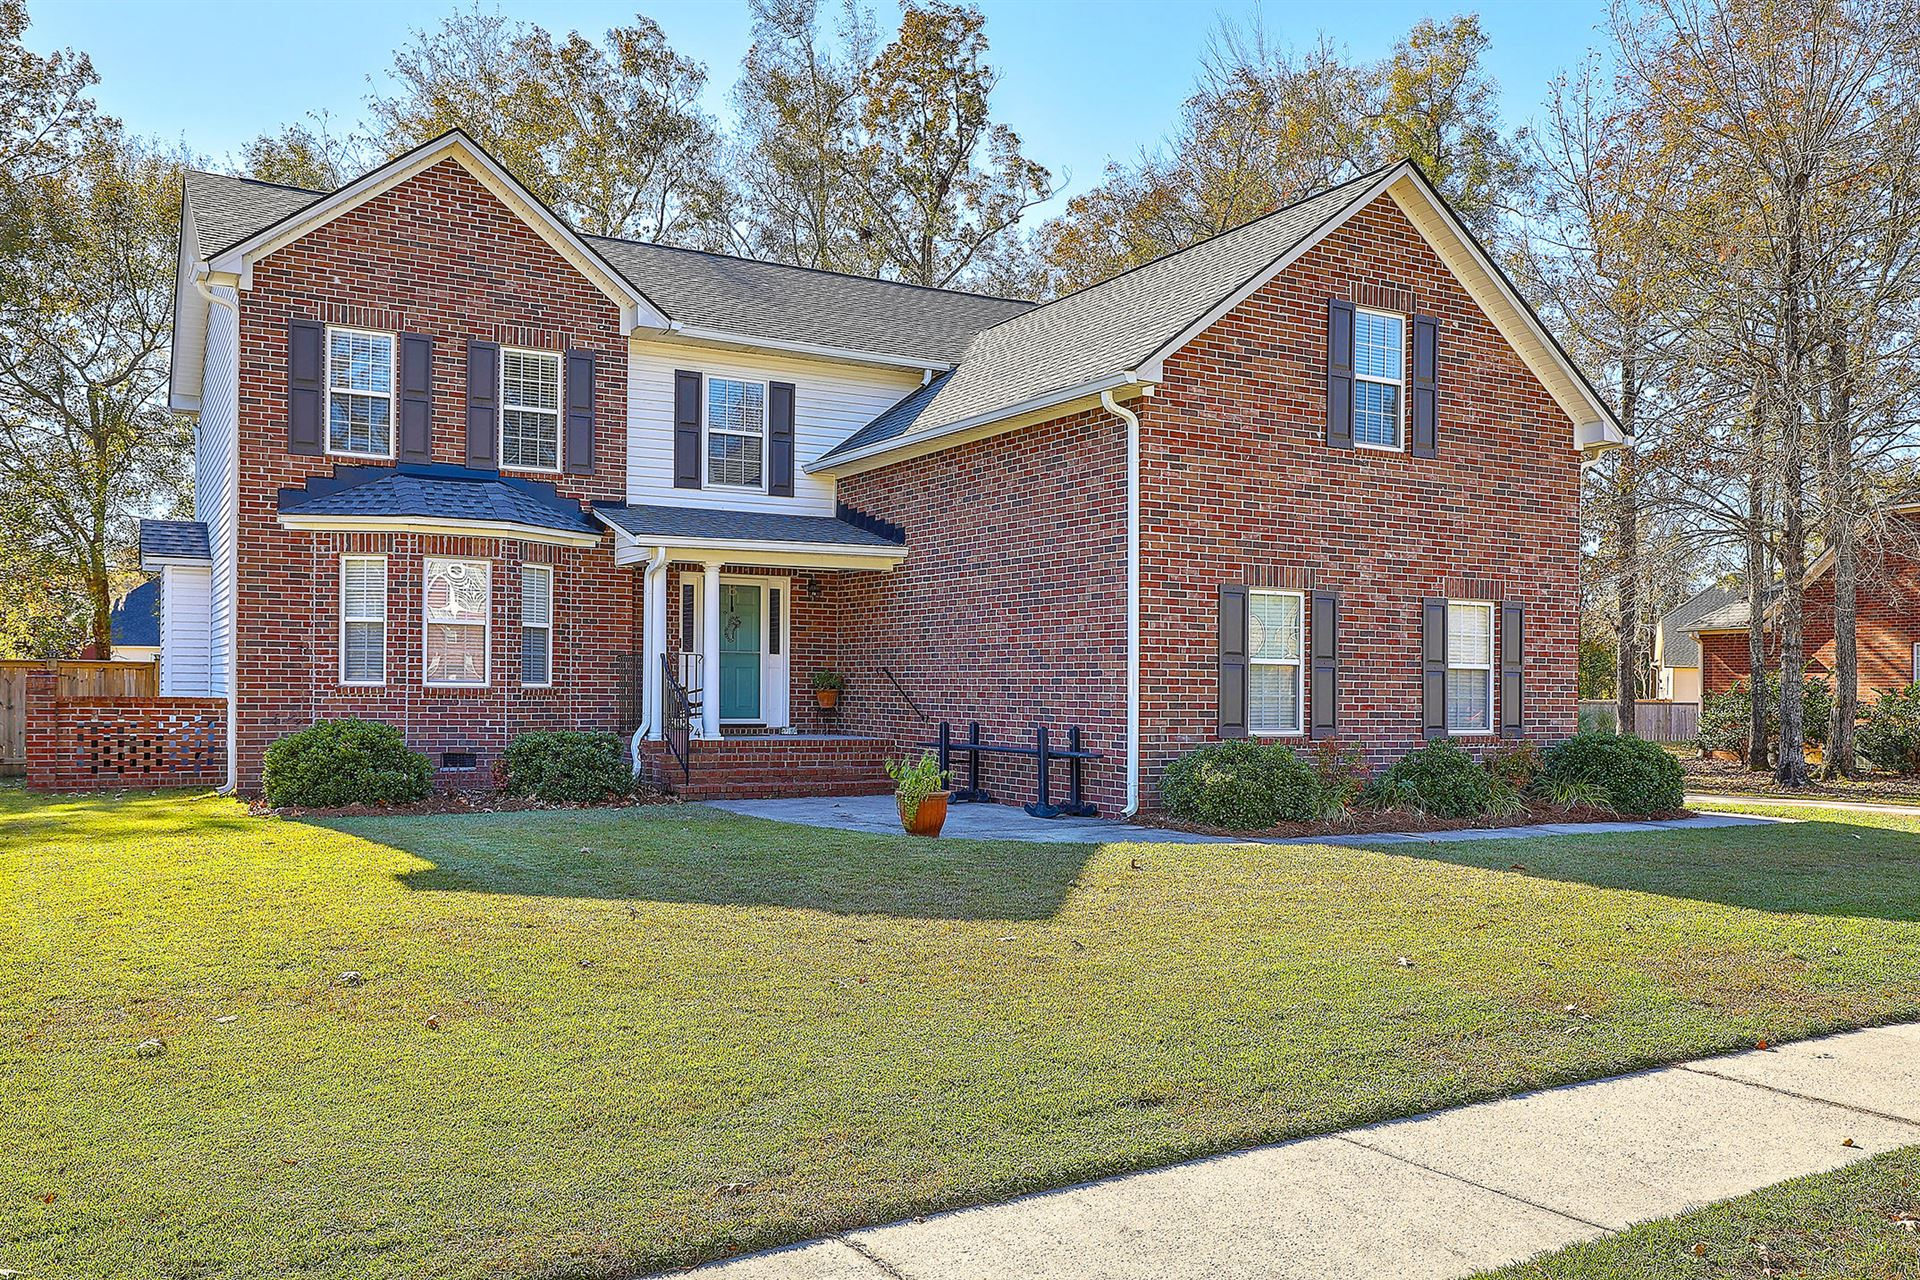 Photo of 104 Jamesford Street, Goose Creek, SC 29445 (MLS # 20032176)